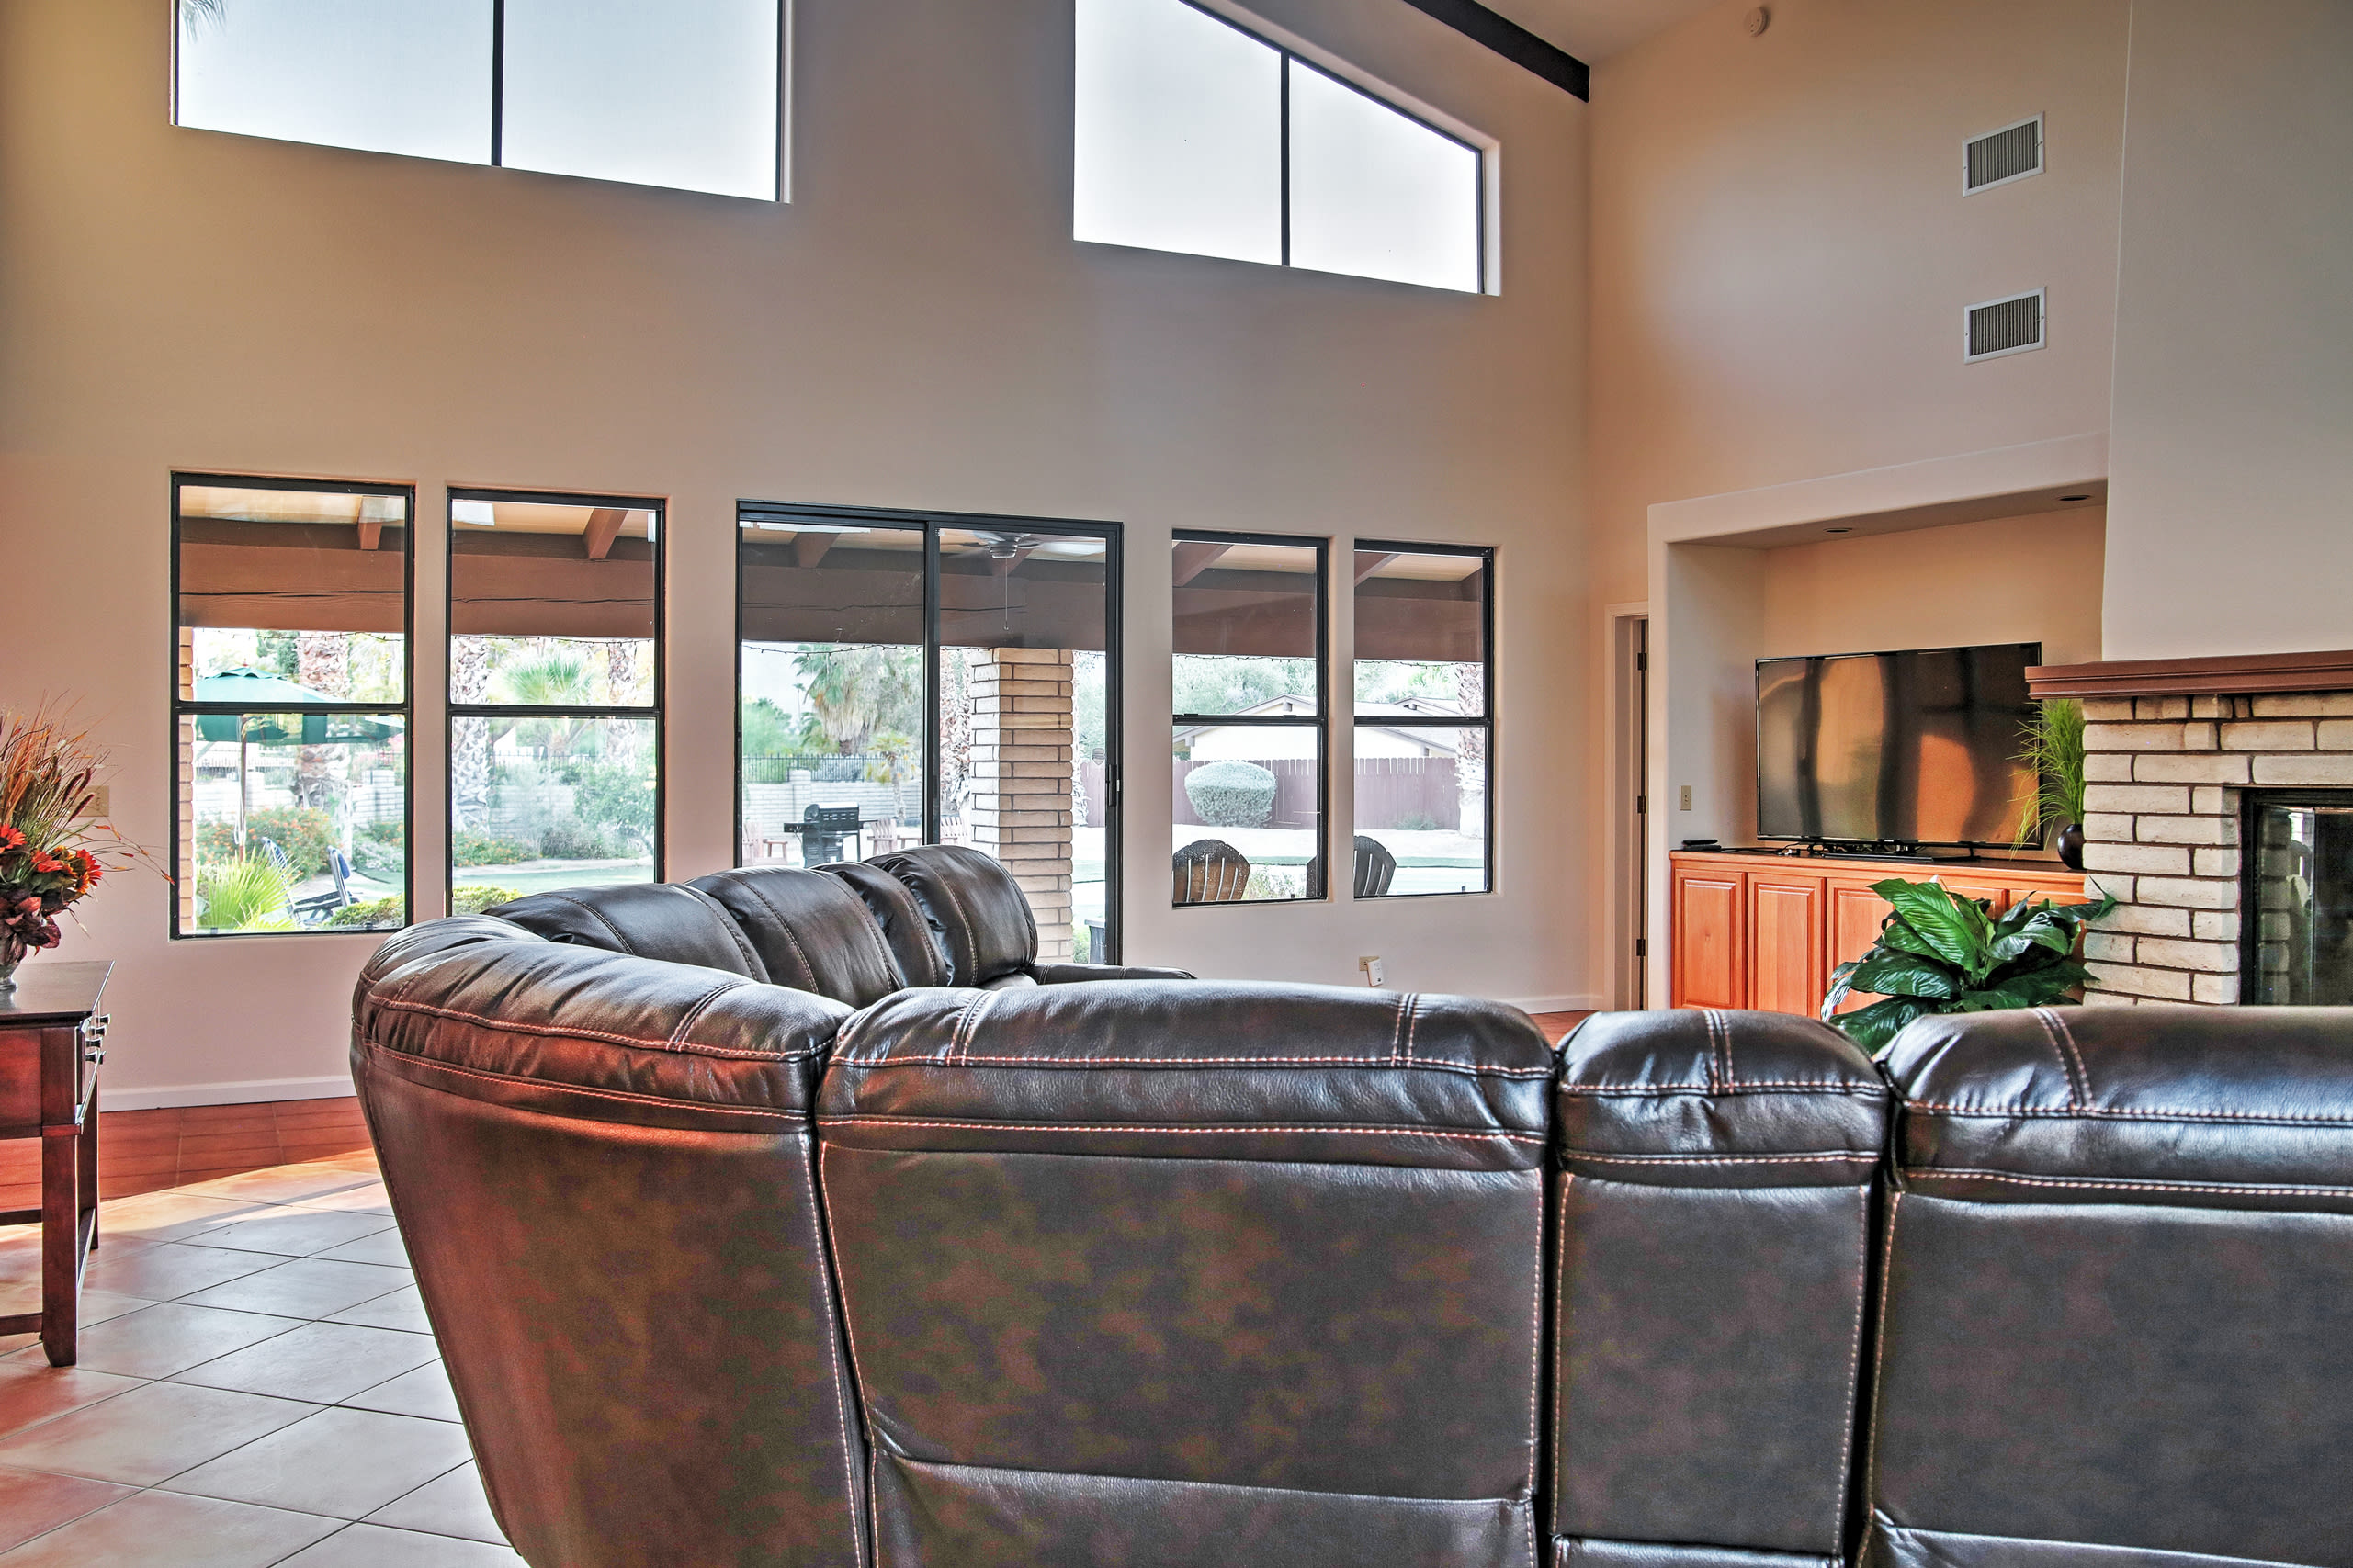 With soaring ceilings, this home feels spacious.